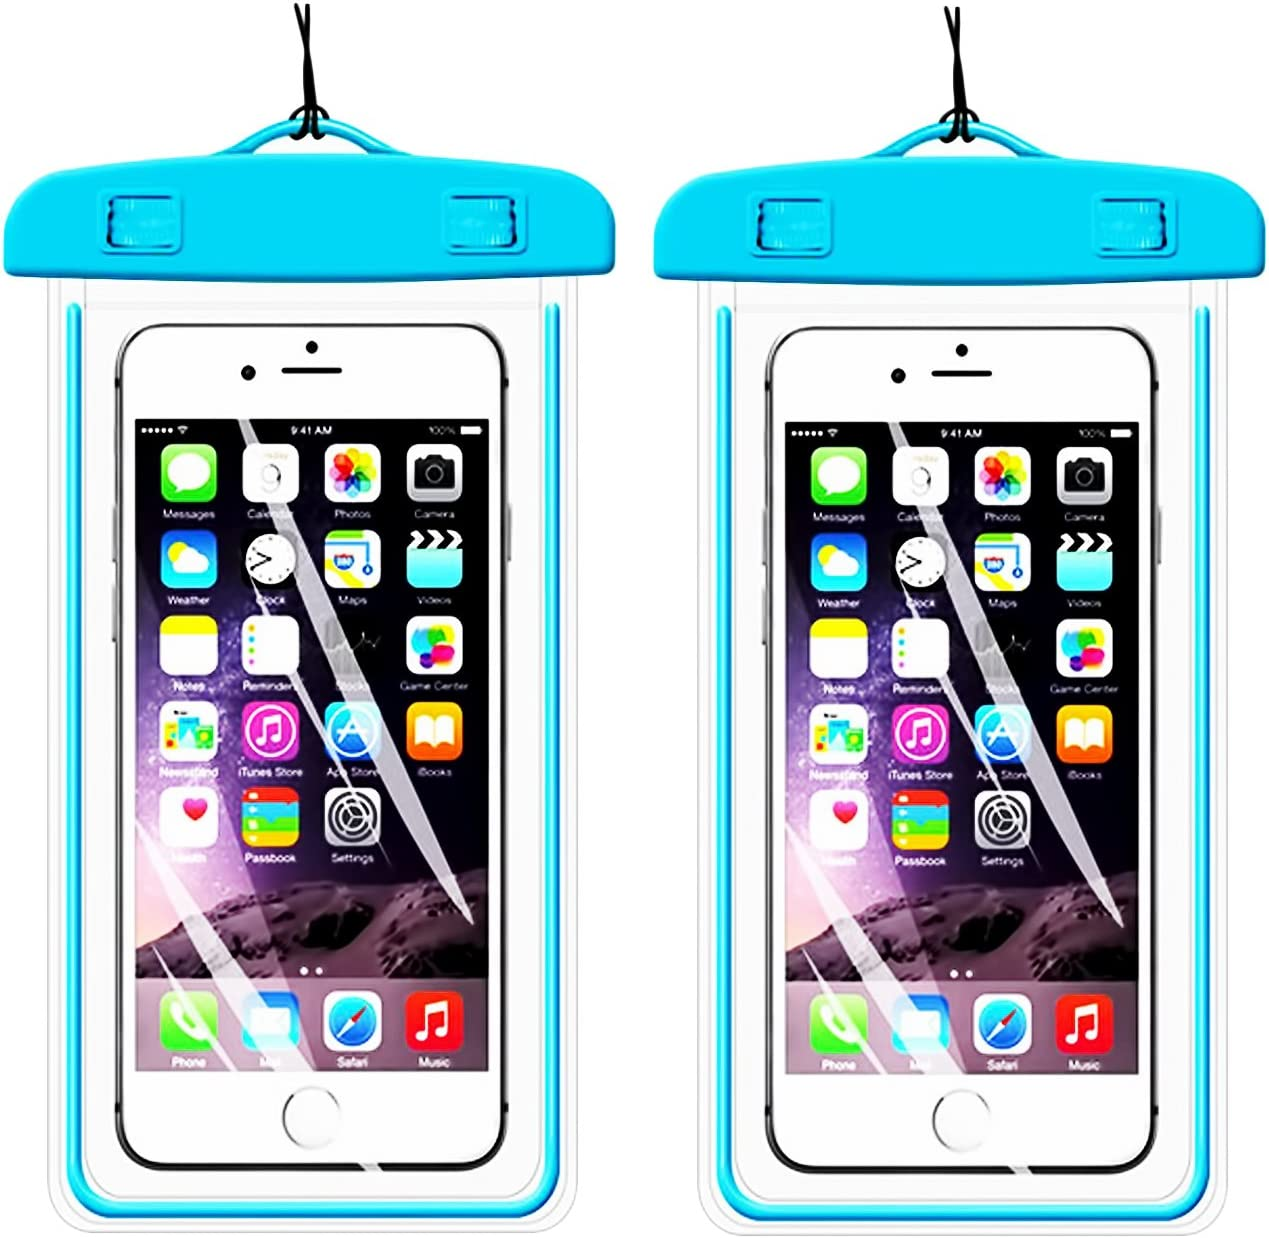 2Pack BlueUniversal Waterproof Phone Case Dry Bag CaseHQ for iPhone 4/5/6/6s/6plus/6splus,Samsung Galaxy s3/s4/s5/s6 etc. Waterproof, Dust Dirt Proof, Snow Proof Pouch for Cell Phone up to 5.8 inches